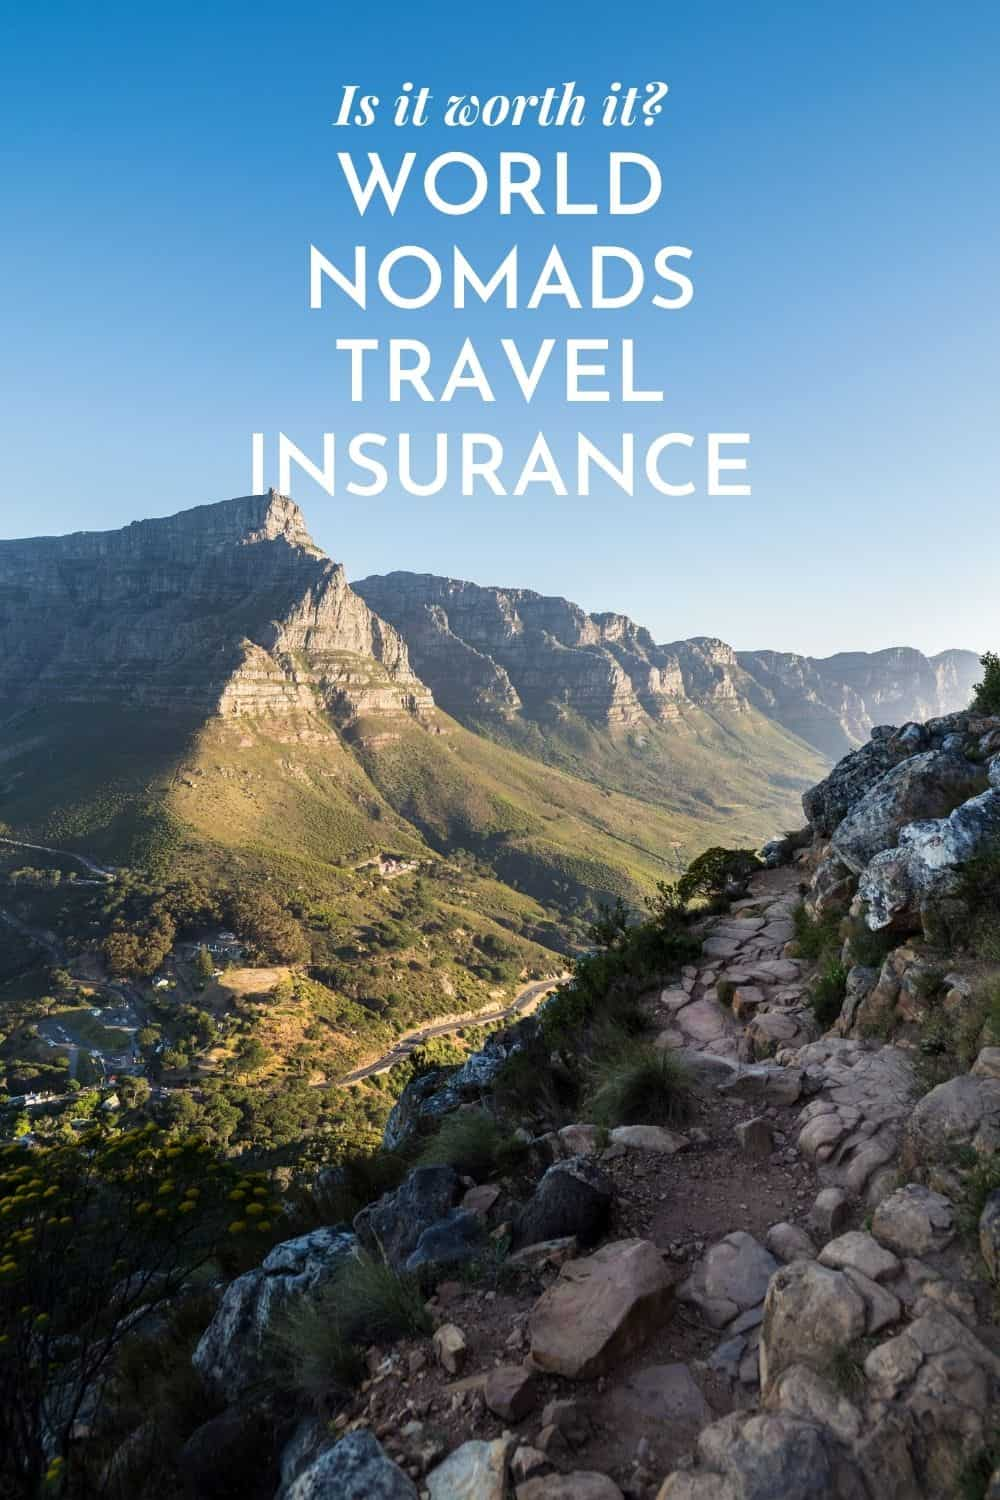 World Nomads Travel Insurance Review - Is It Worth It?